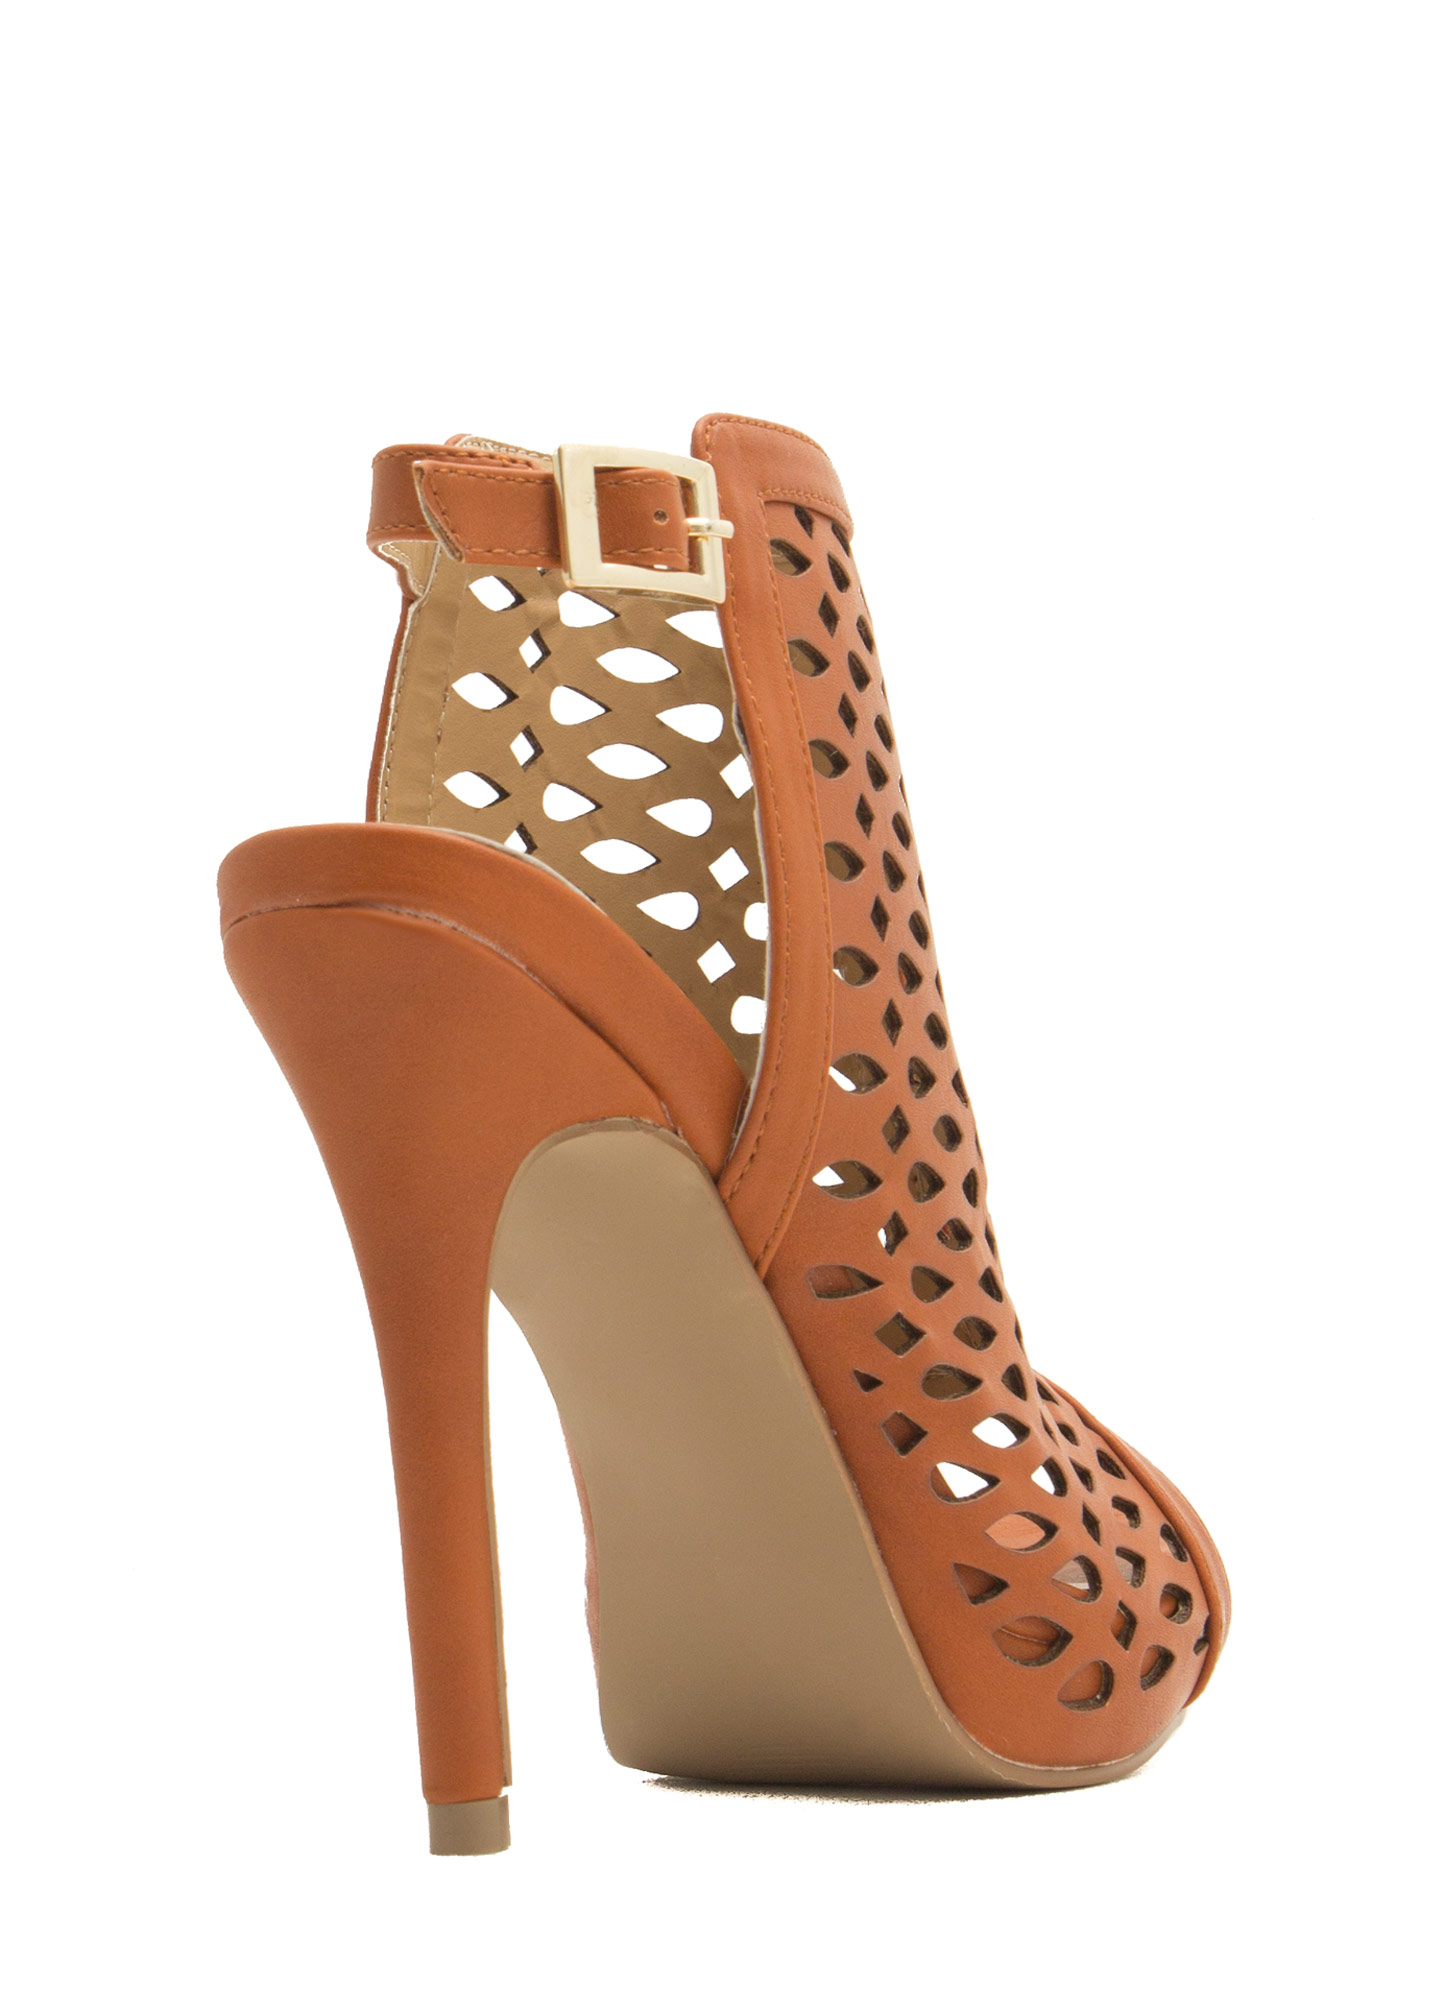 Marquis N Teardrop Cut-Out Heels TAN